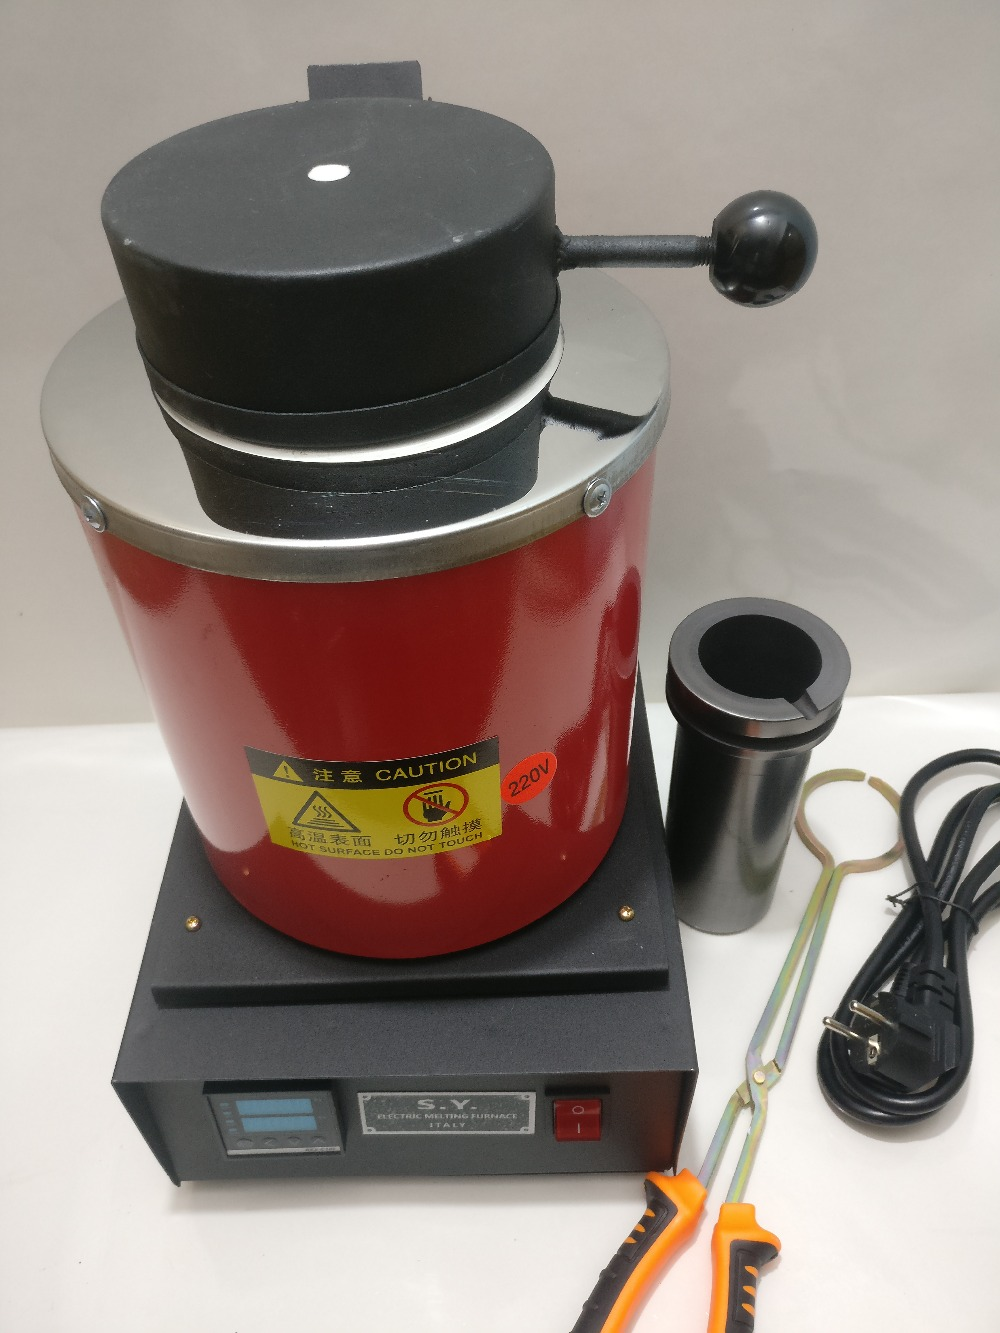 110v/220v, jewelry melter, Electric melting furnace gold and silver melting oven with capacity 2kg,brass smelting machine joyeri110v/220v, jewelry melter, Electric melting furnace gold and silver melting oven with capacity 2kg,brass smelting machine joyeri